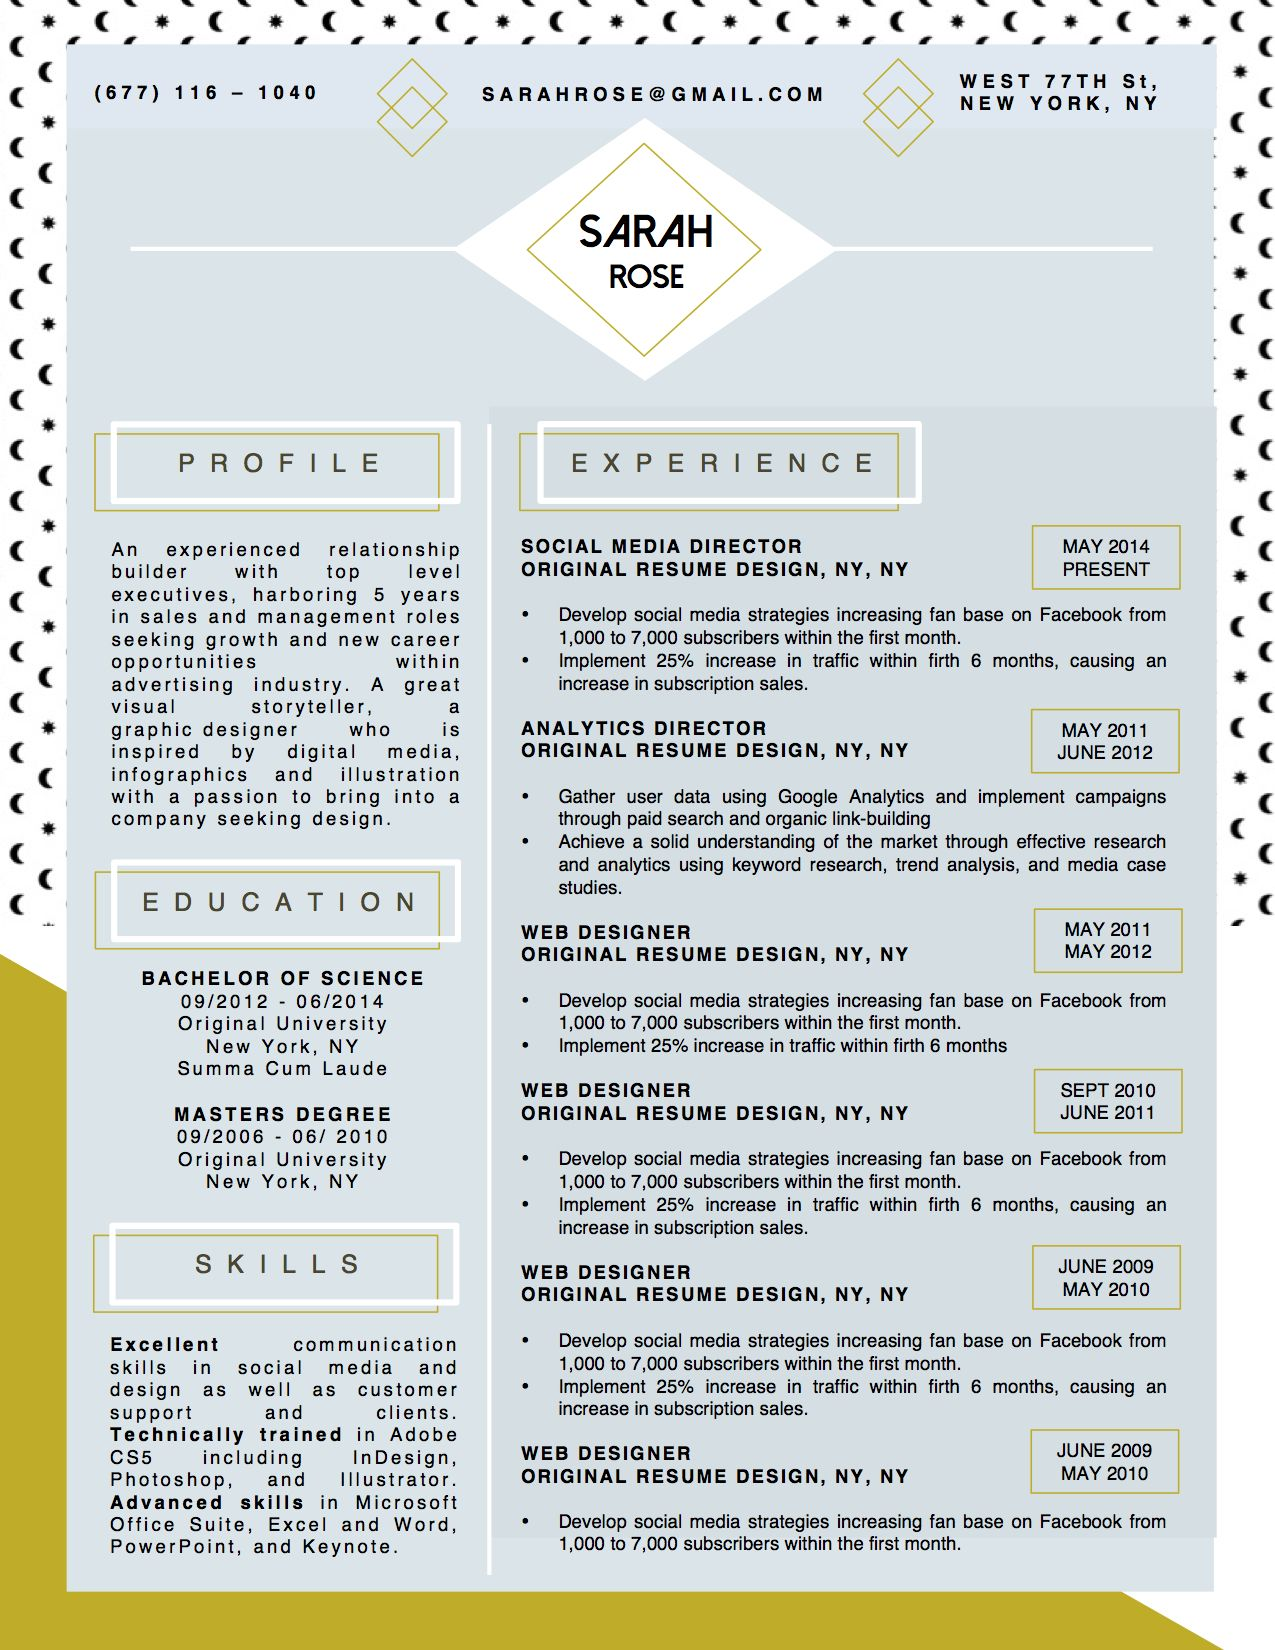 beautiful resume cv template for microsoft word with matching cover letter by original resume